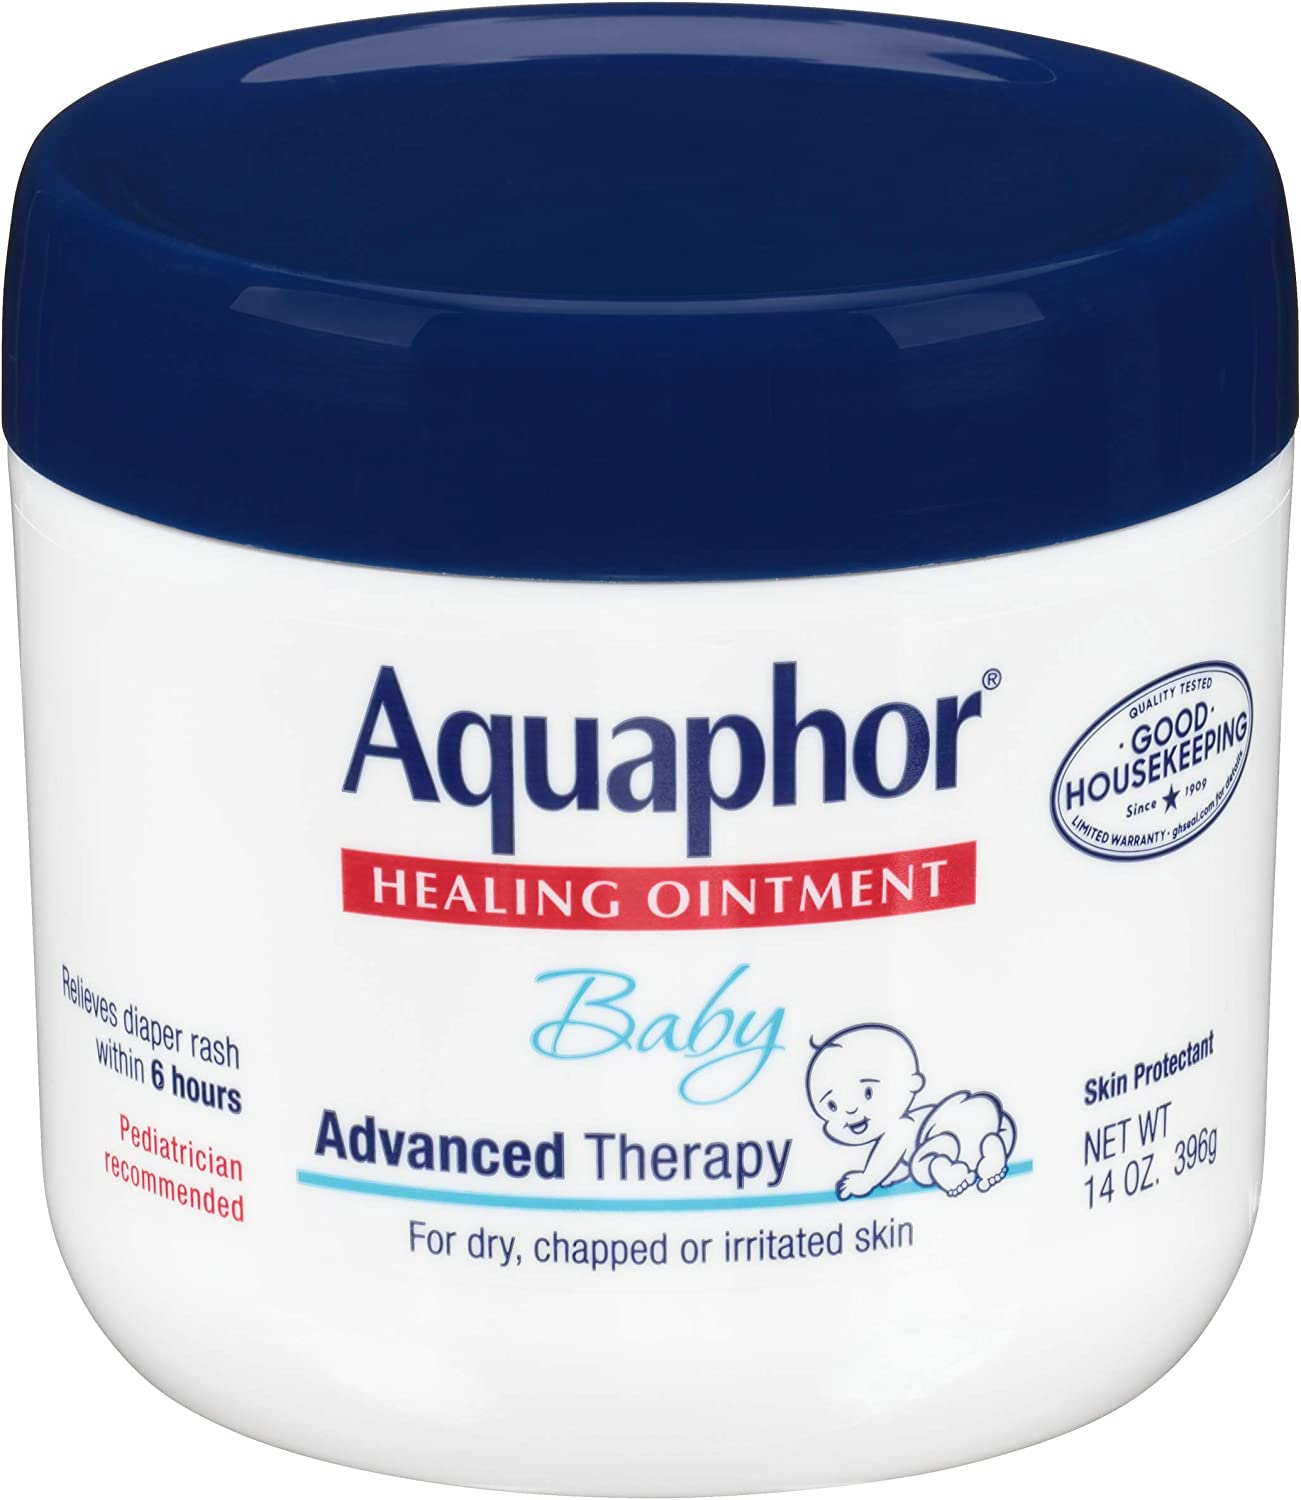 Aquaphor Baby Healing Ointment for baby essentials first 3 months